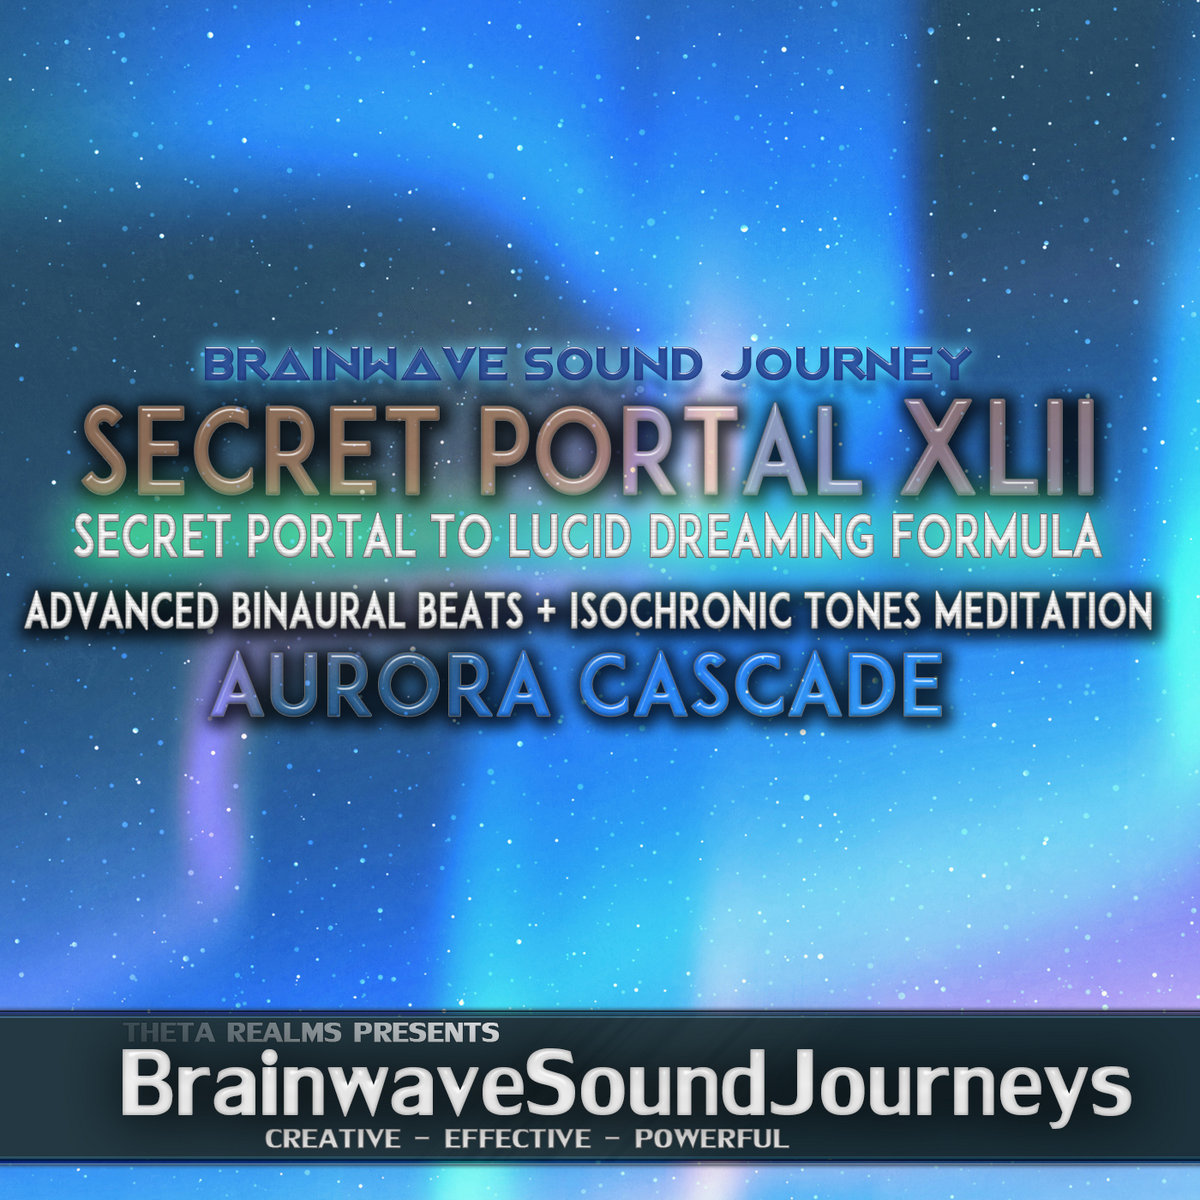 DEEP & PROFOUND! INSTANT LUCID DREAMING PORTAL With POTENT Theta